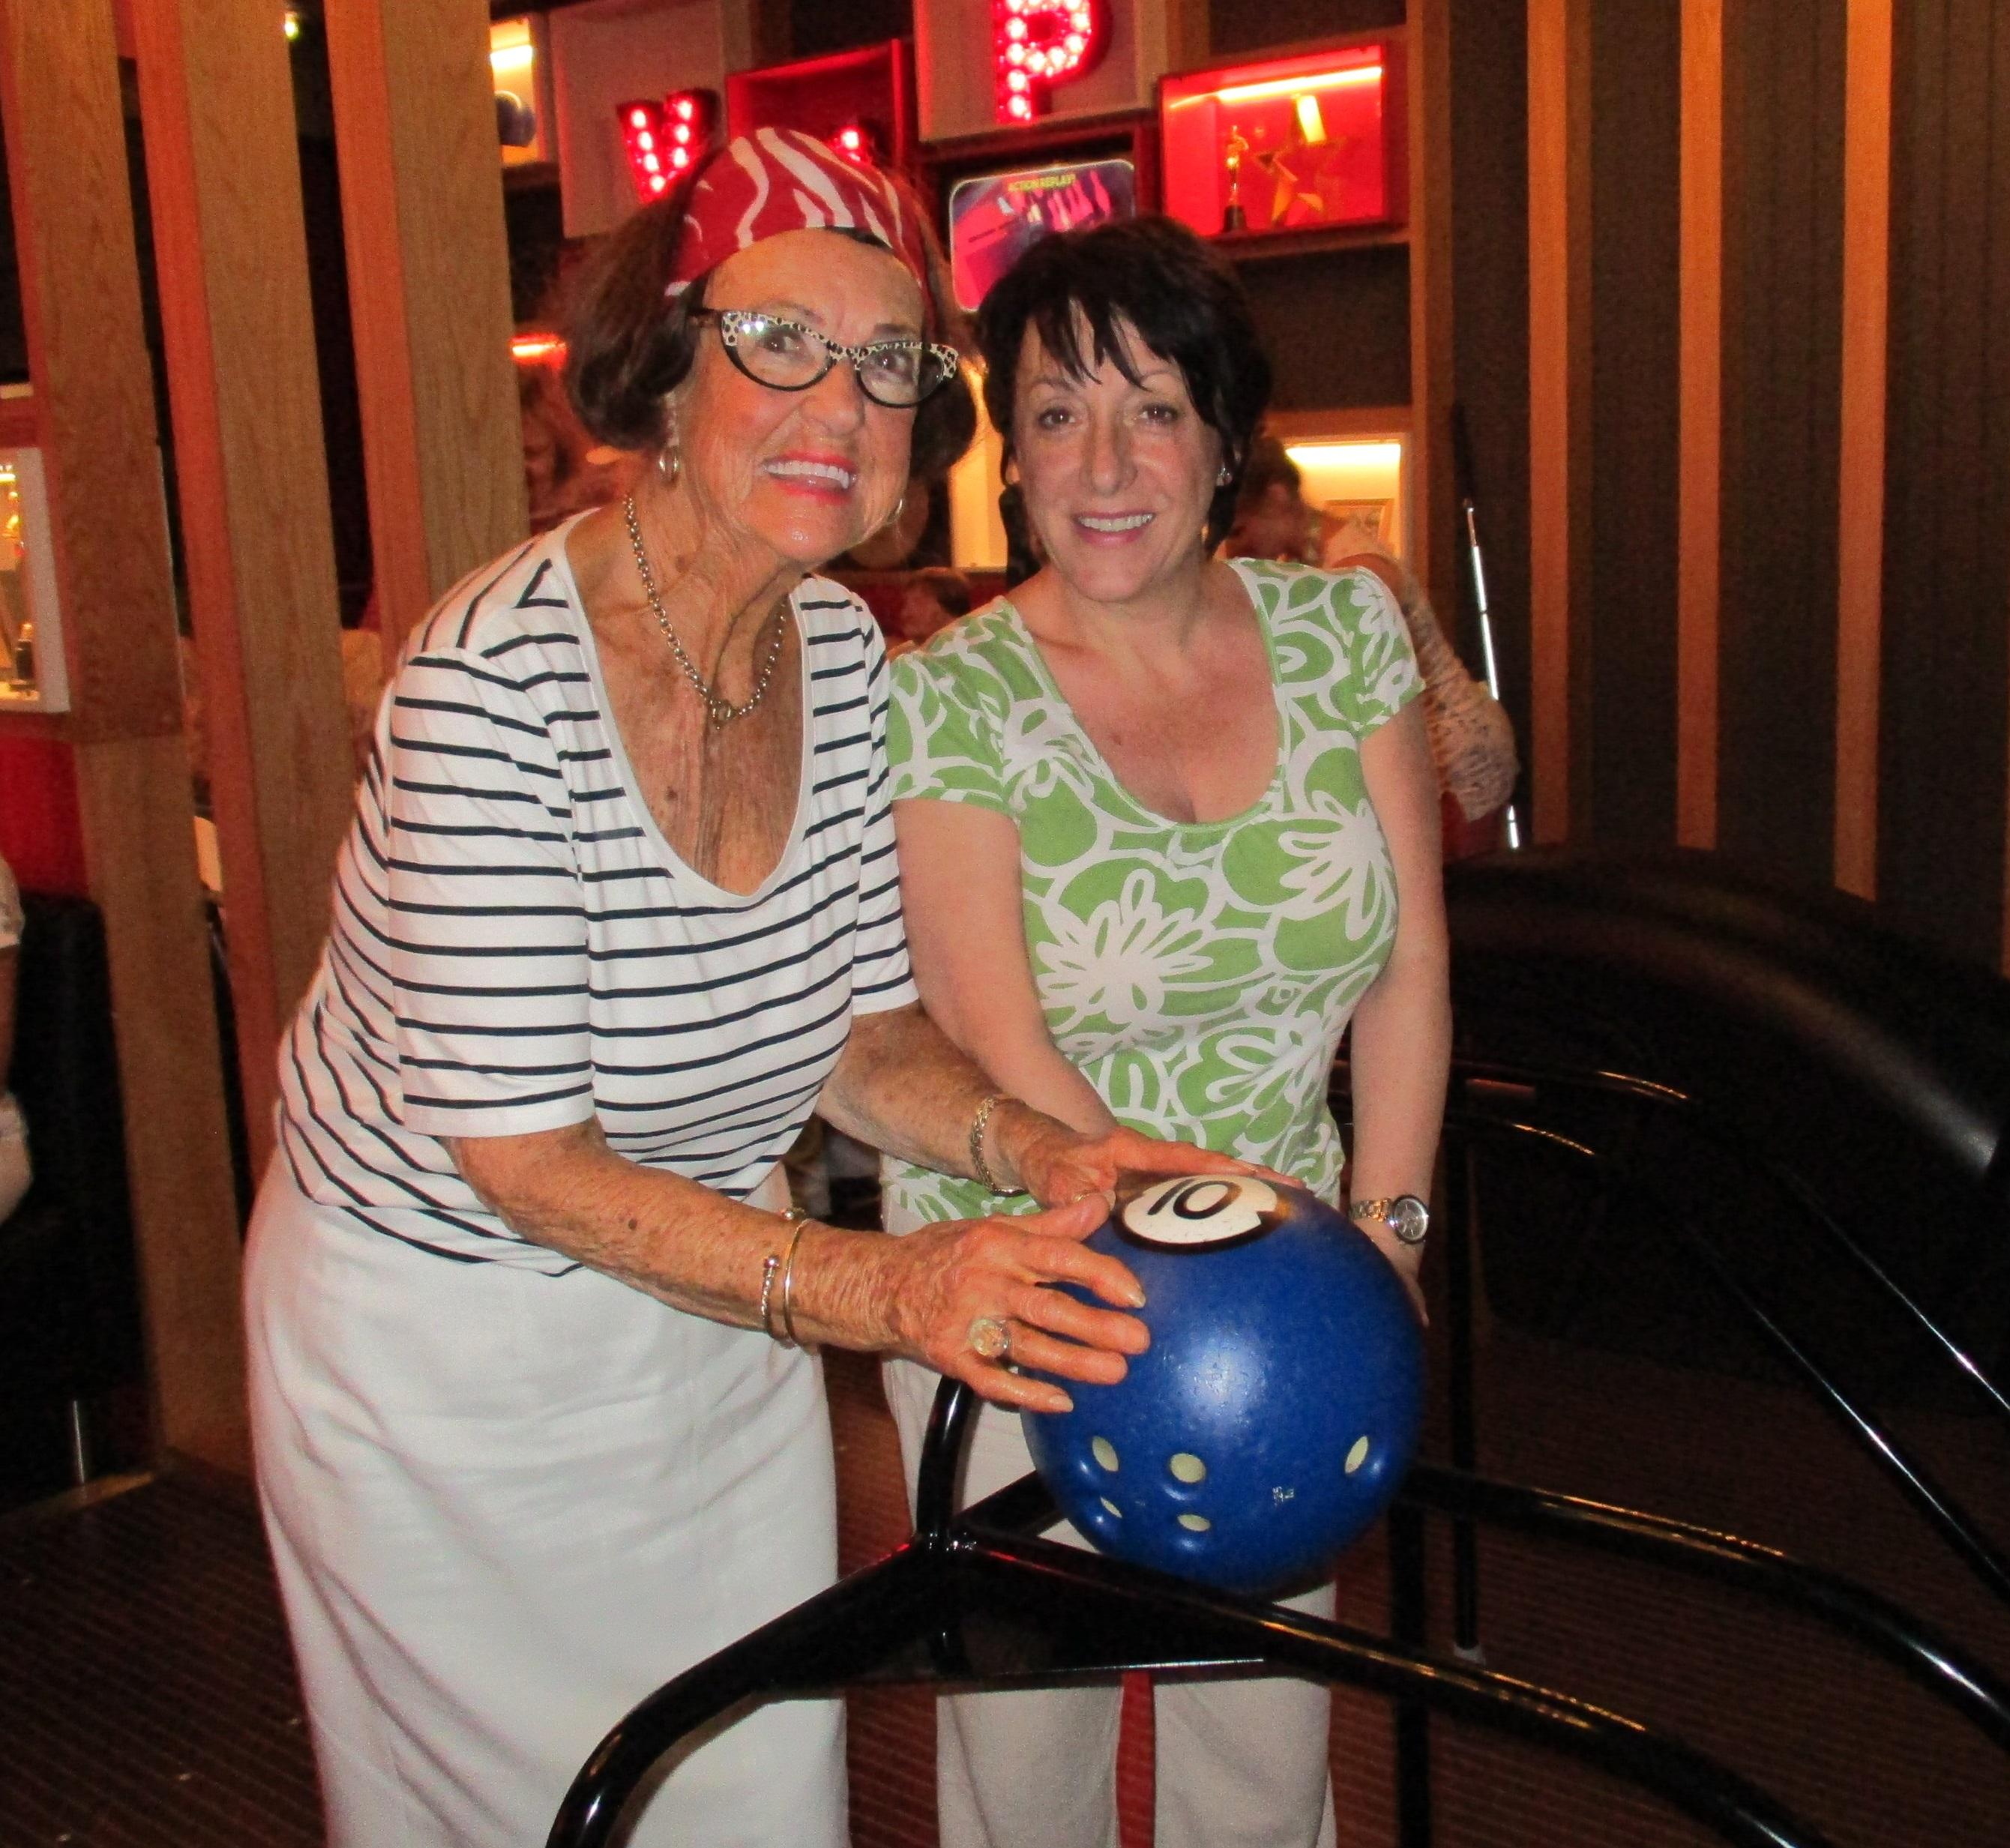 Image Showing two women enjoying a bowling trip